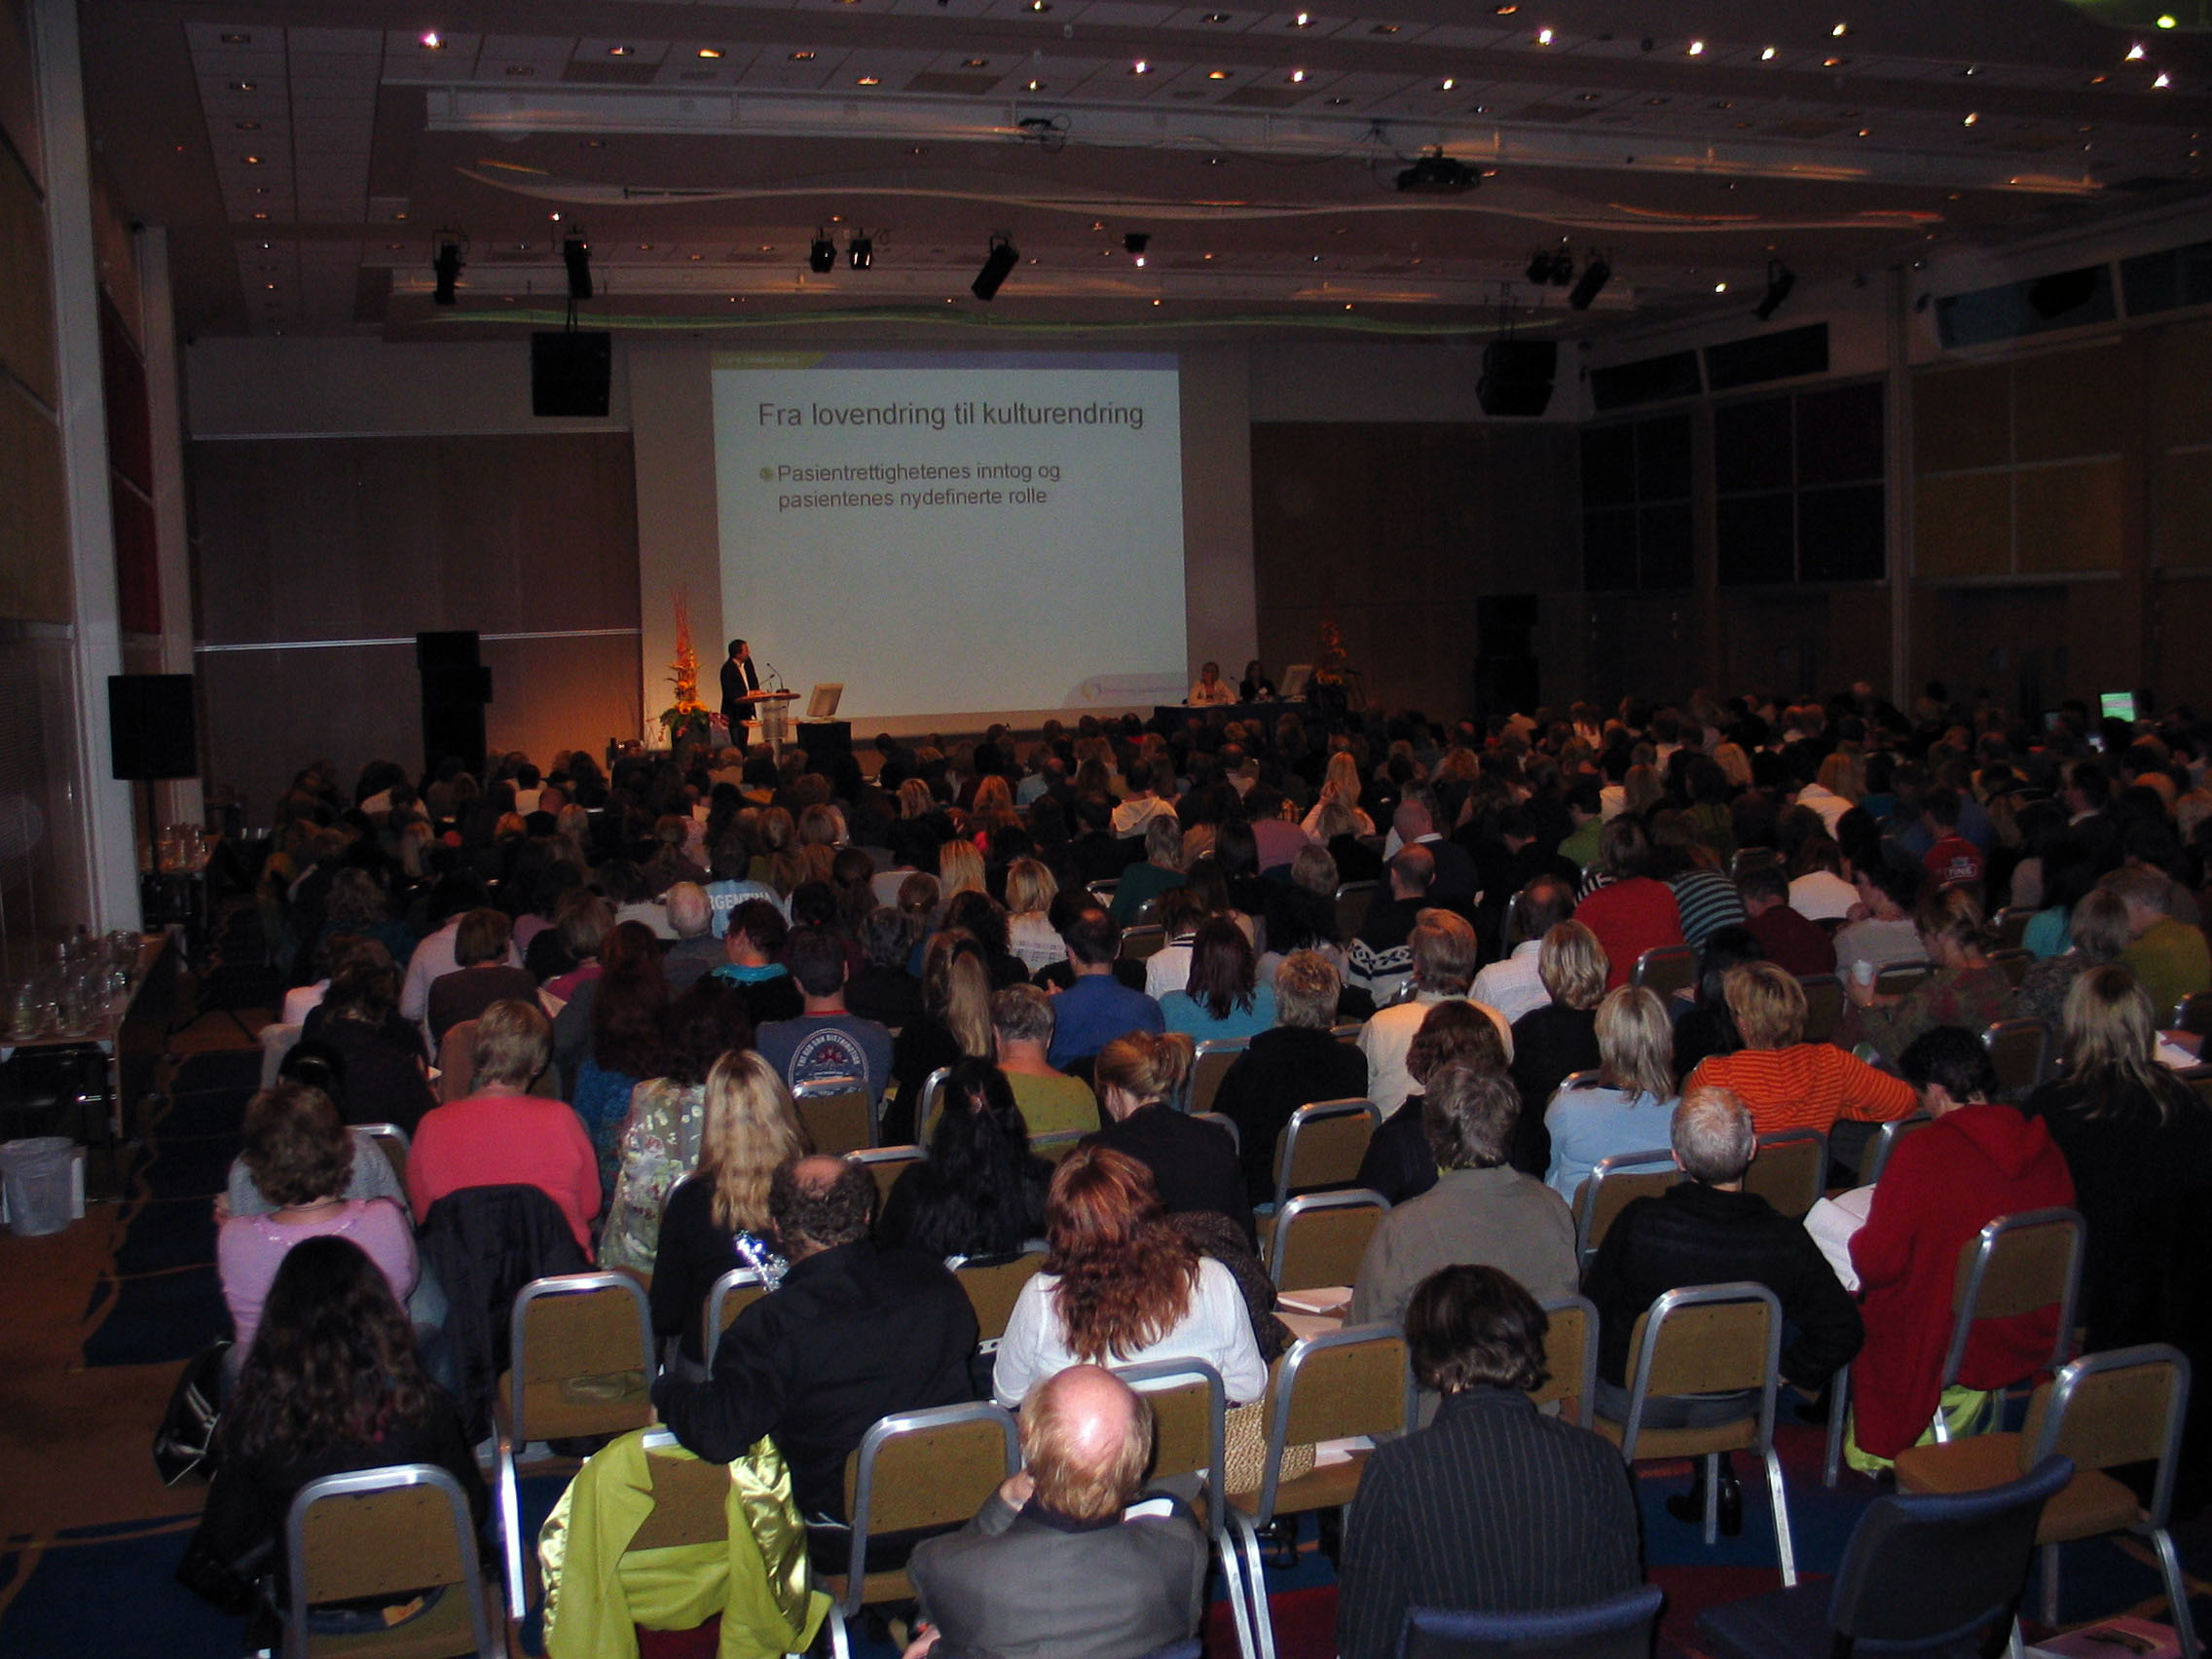 A conference in Oslo